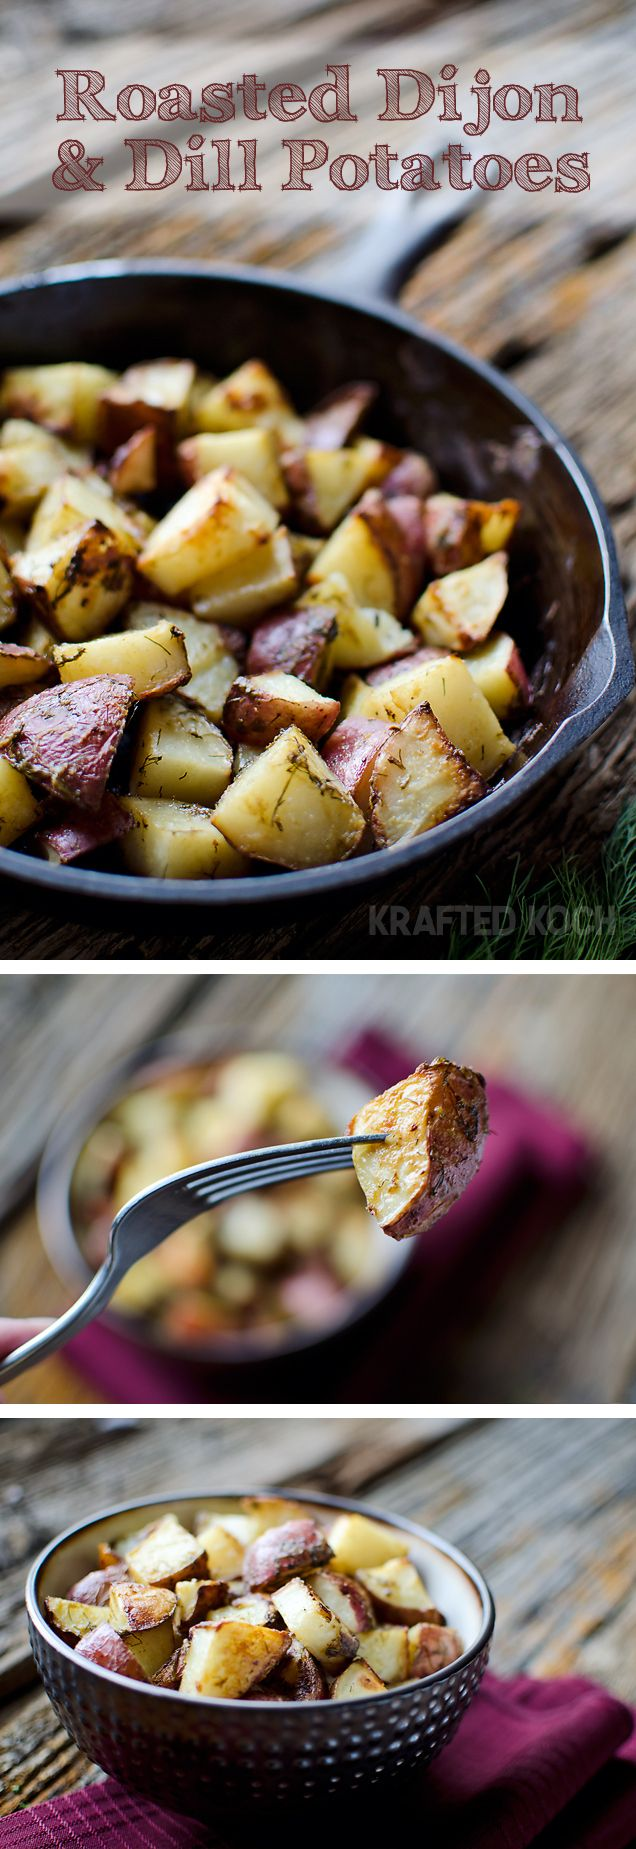 Make this simple roasted potato recipe for the Thanksgiving feast.  This dish packs plenty of flavor and is seasoned to perfection.